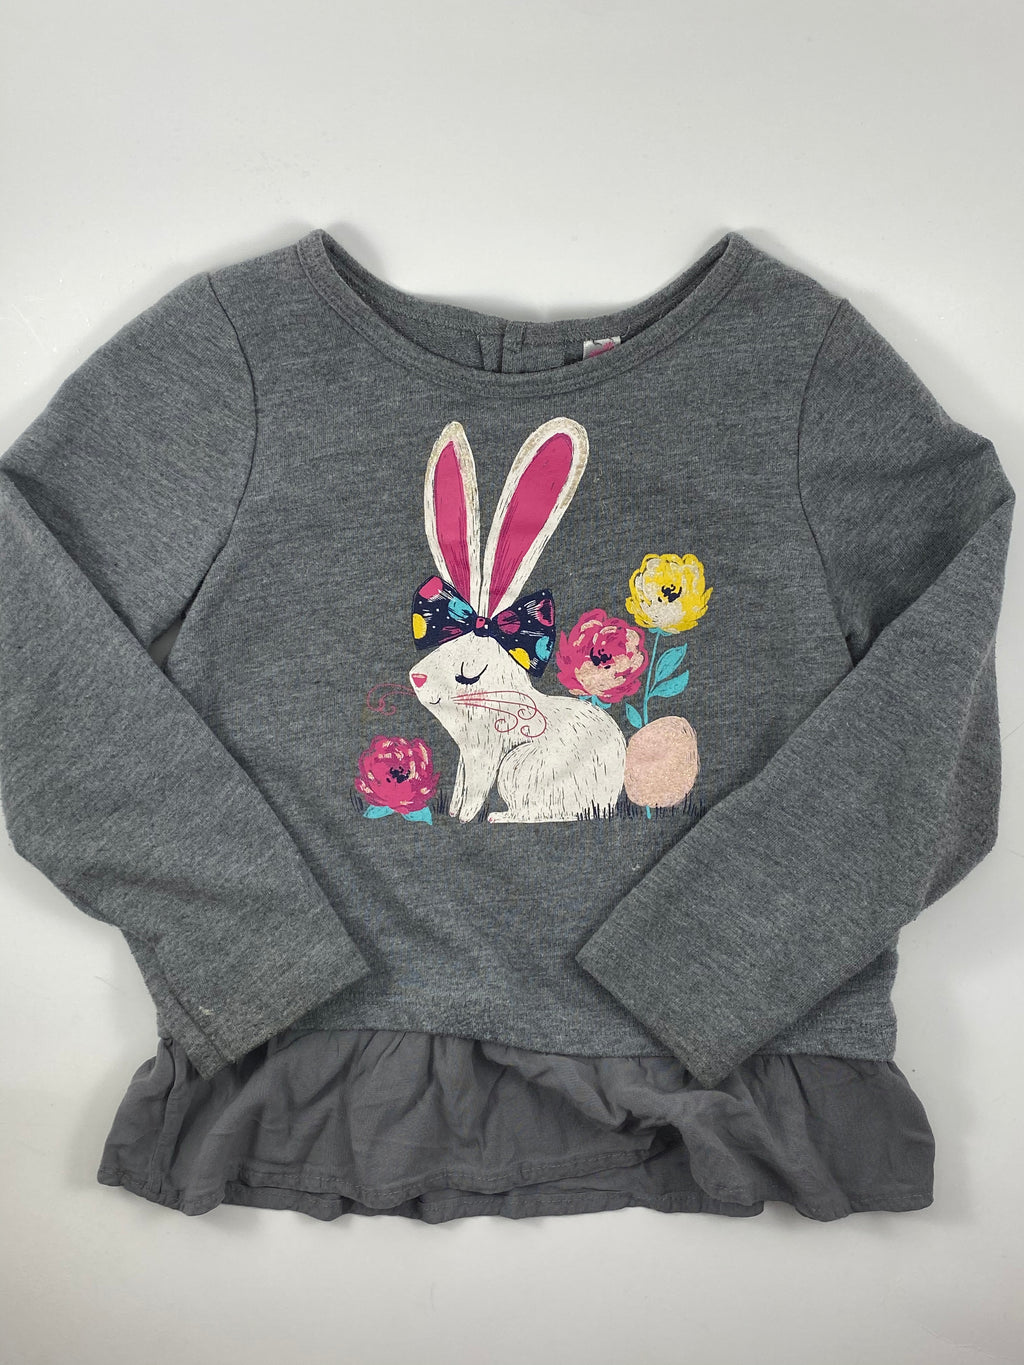 Girl's Long Sleeve Shirt - Size 5t